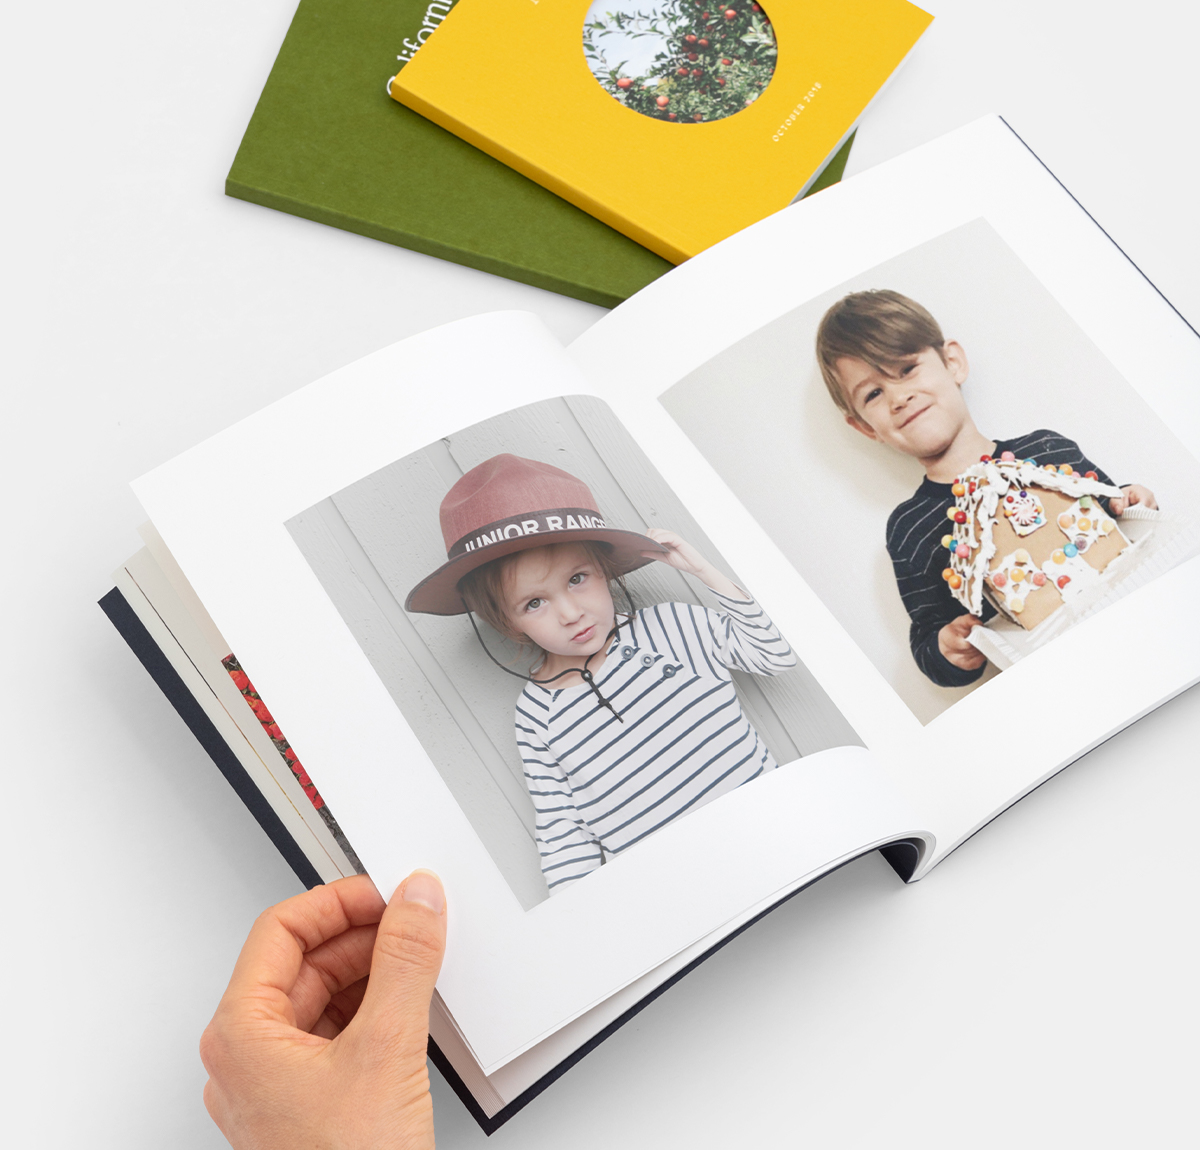 Photo books opened to portraits of two little boys